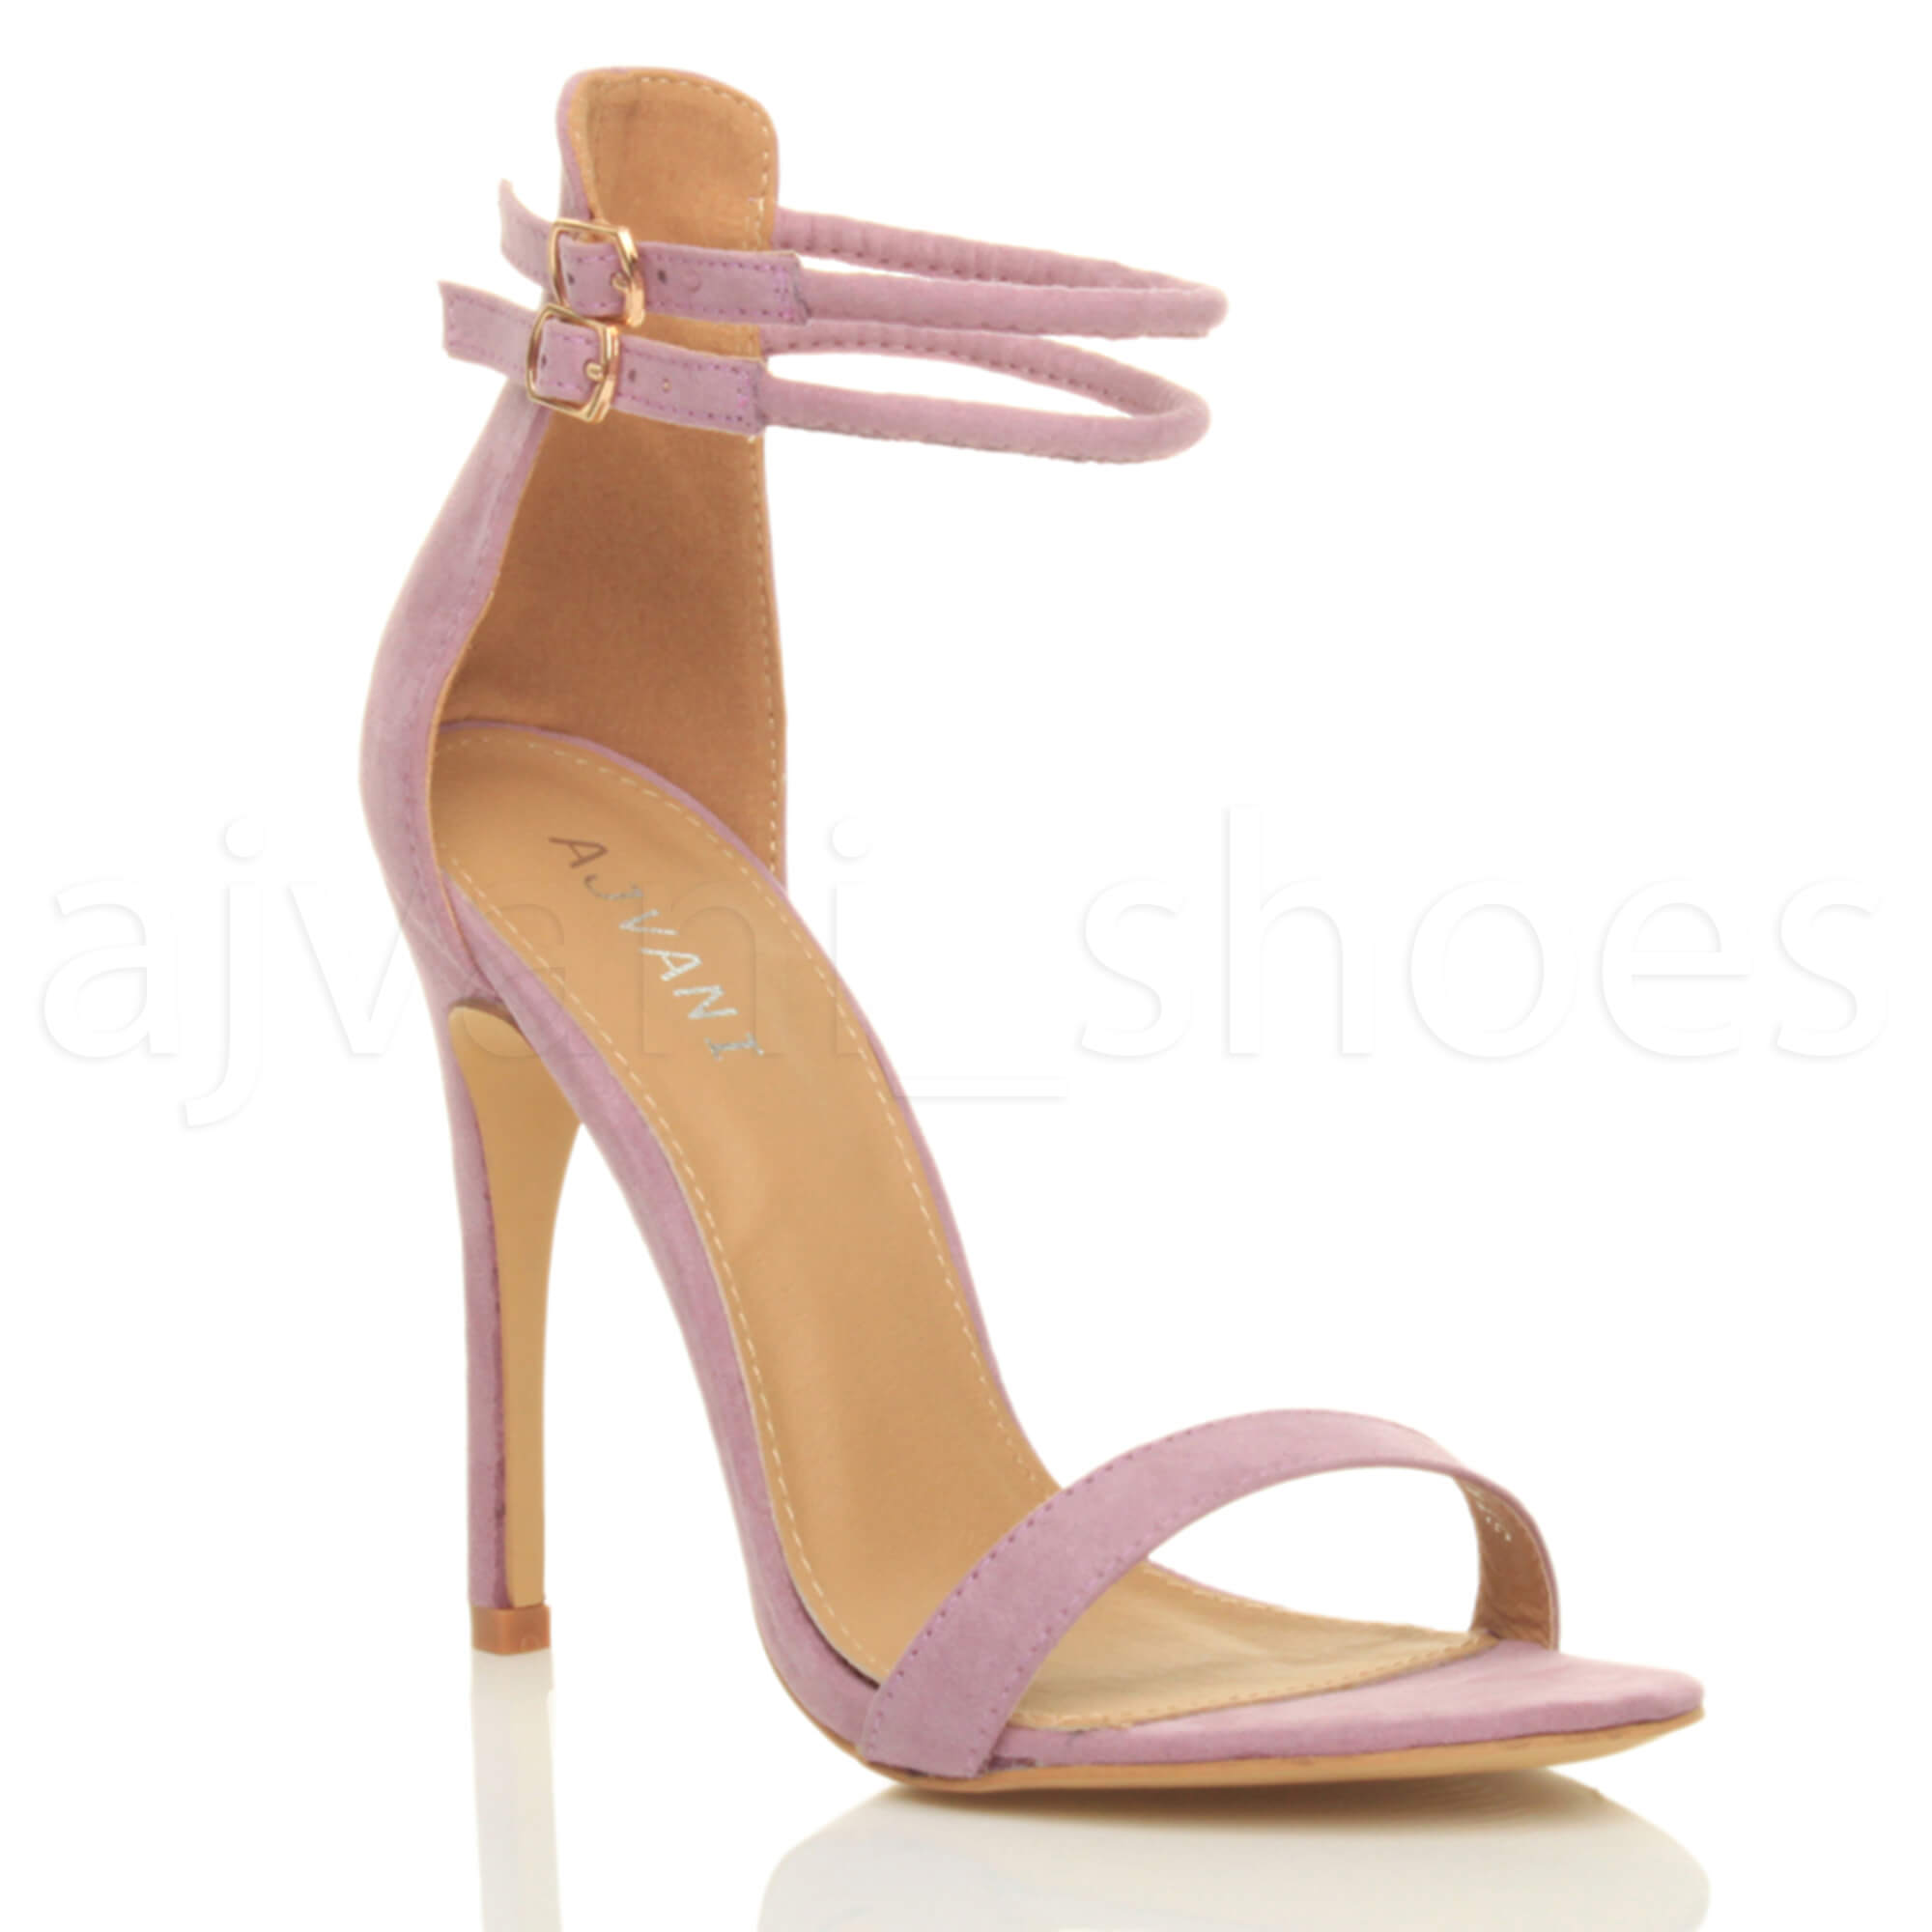 WOMENS-LADIES-BARELY-THERE-HIGH-HEEL-ANKLE-CROSS-STRAPPY-BUCKLE-PARTY-SANDALS